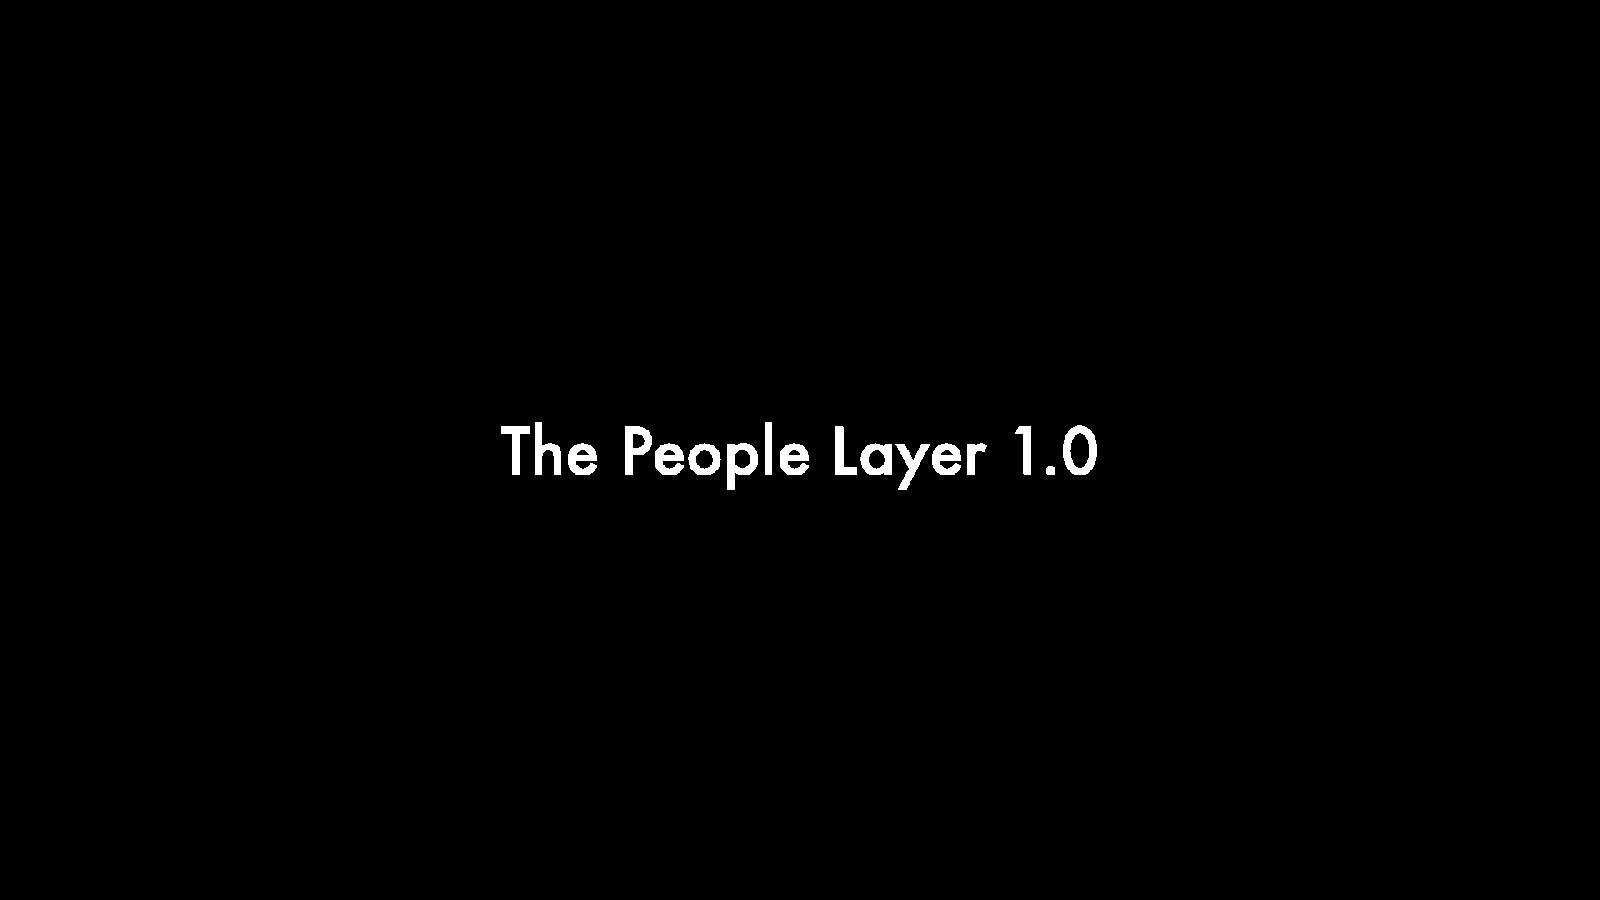 The People Layer 1.0